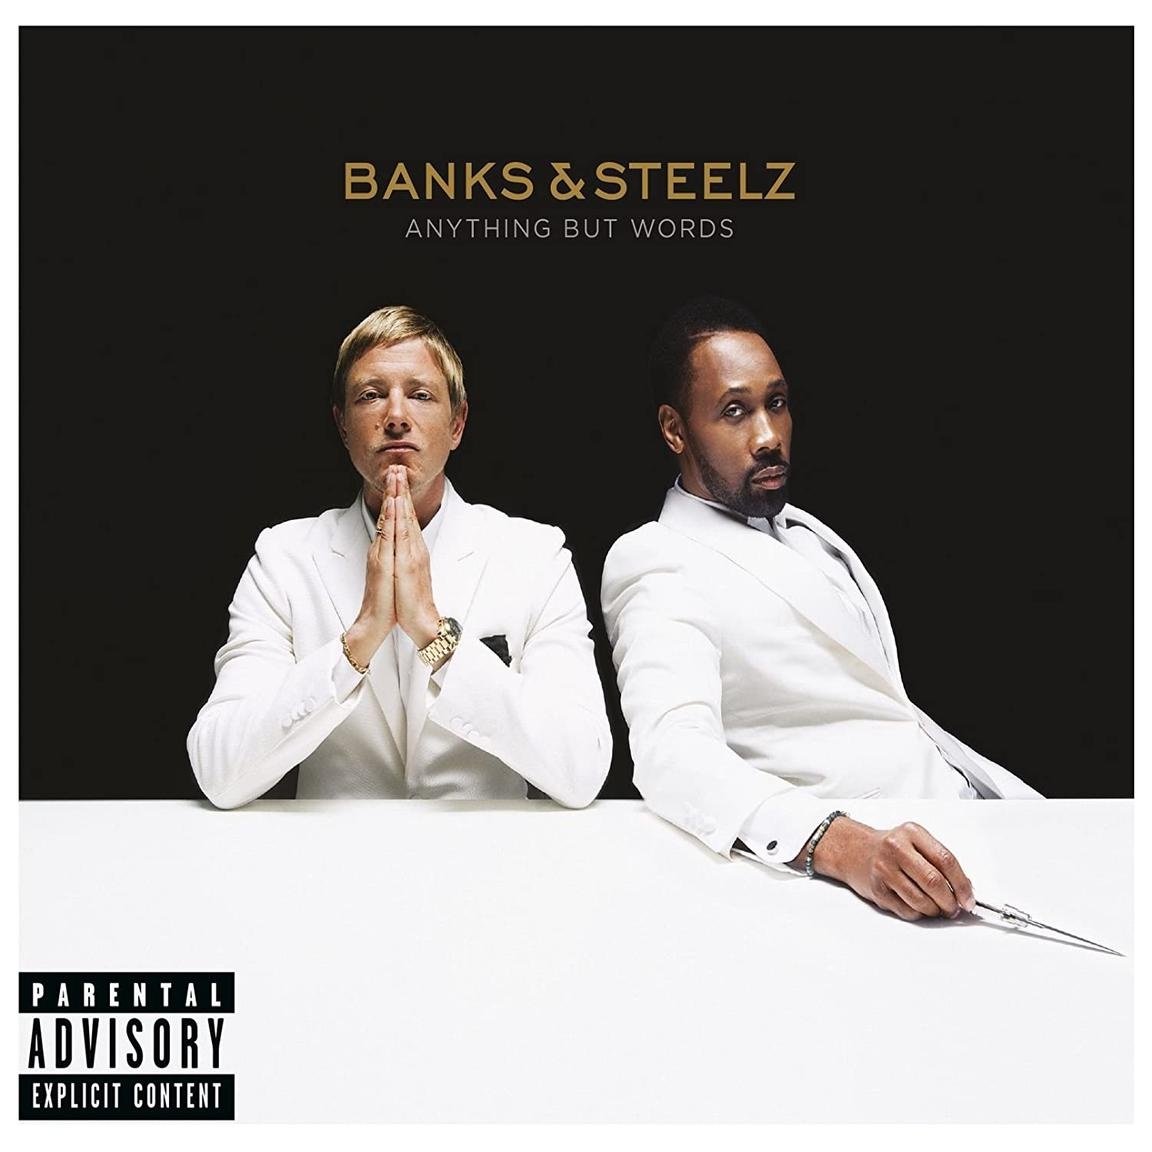 Banks & Steelz / Anything But Words